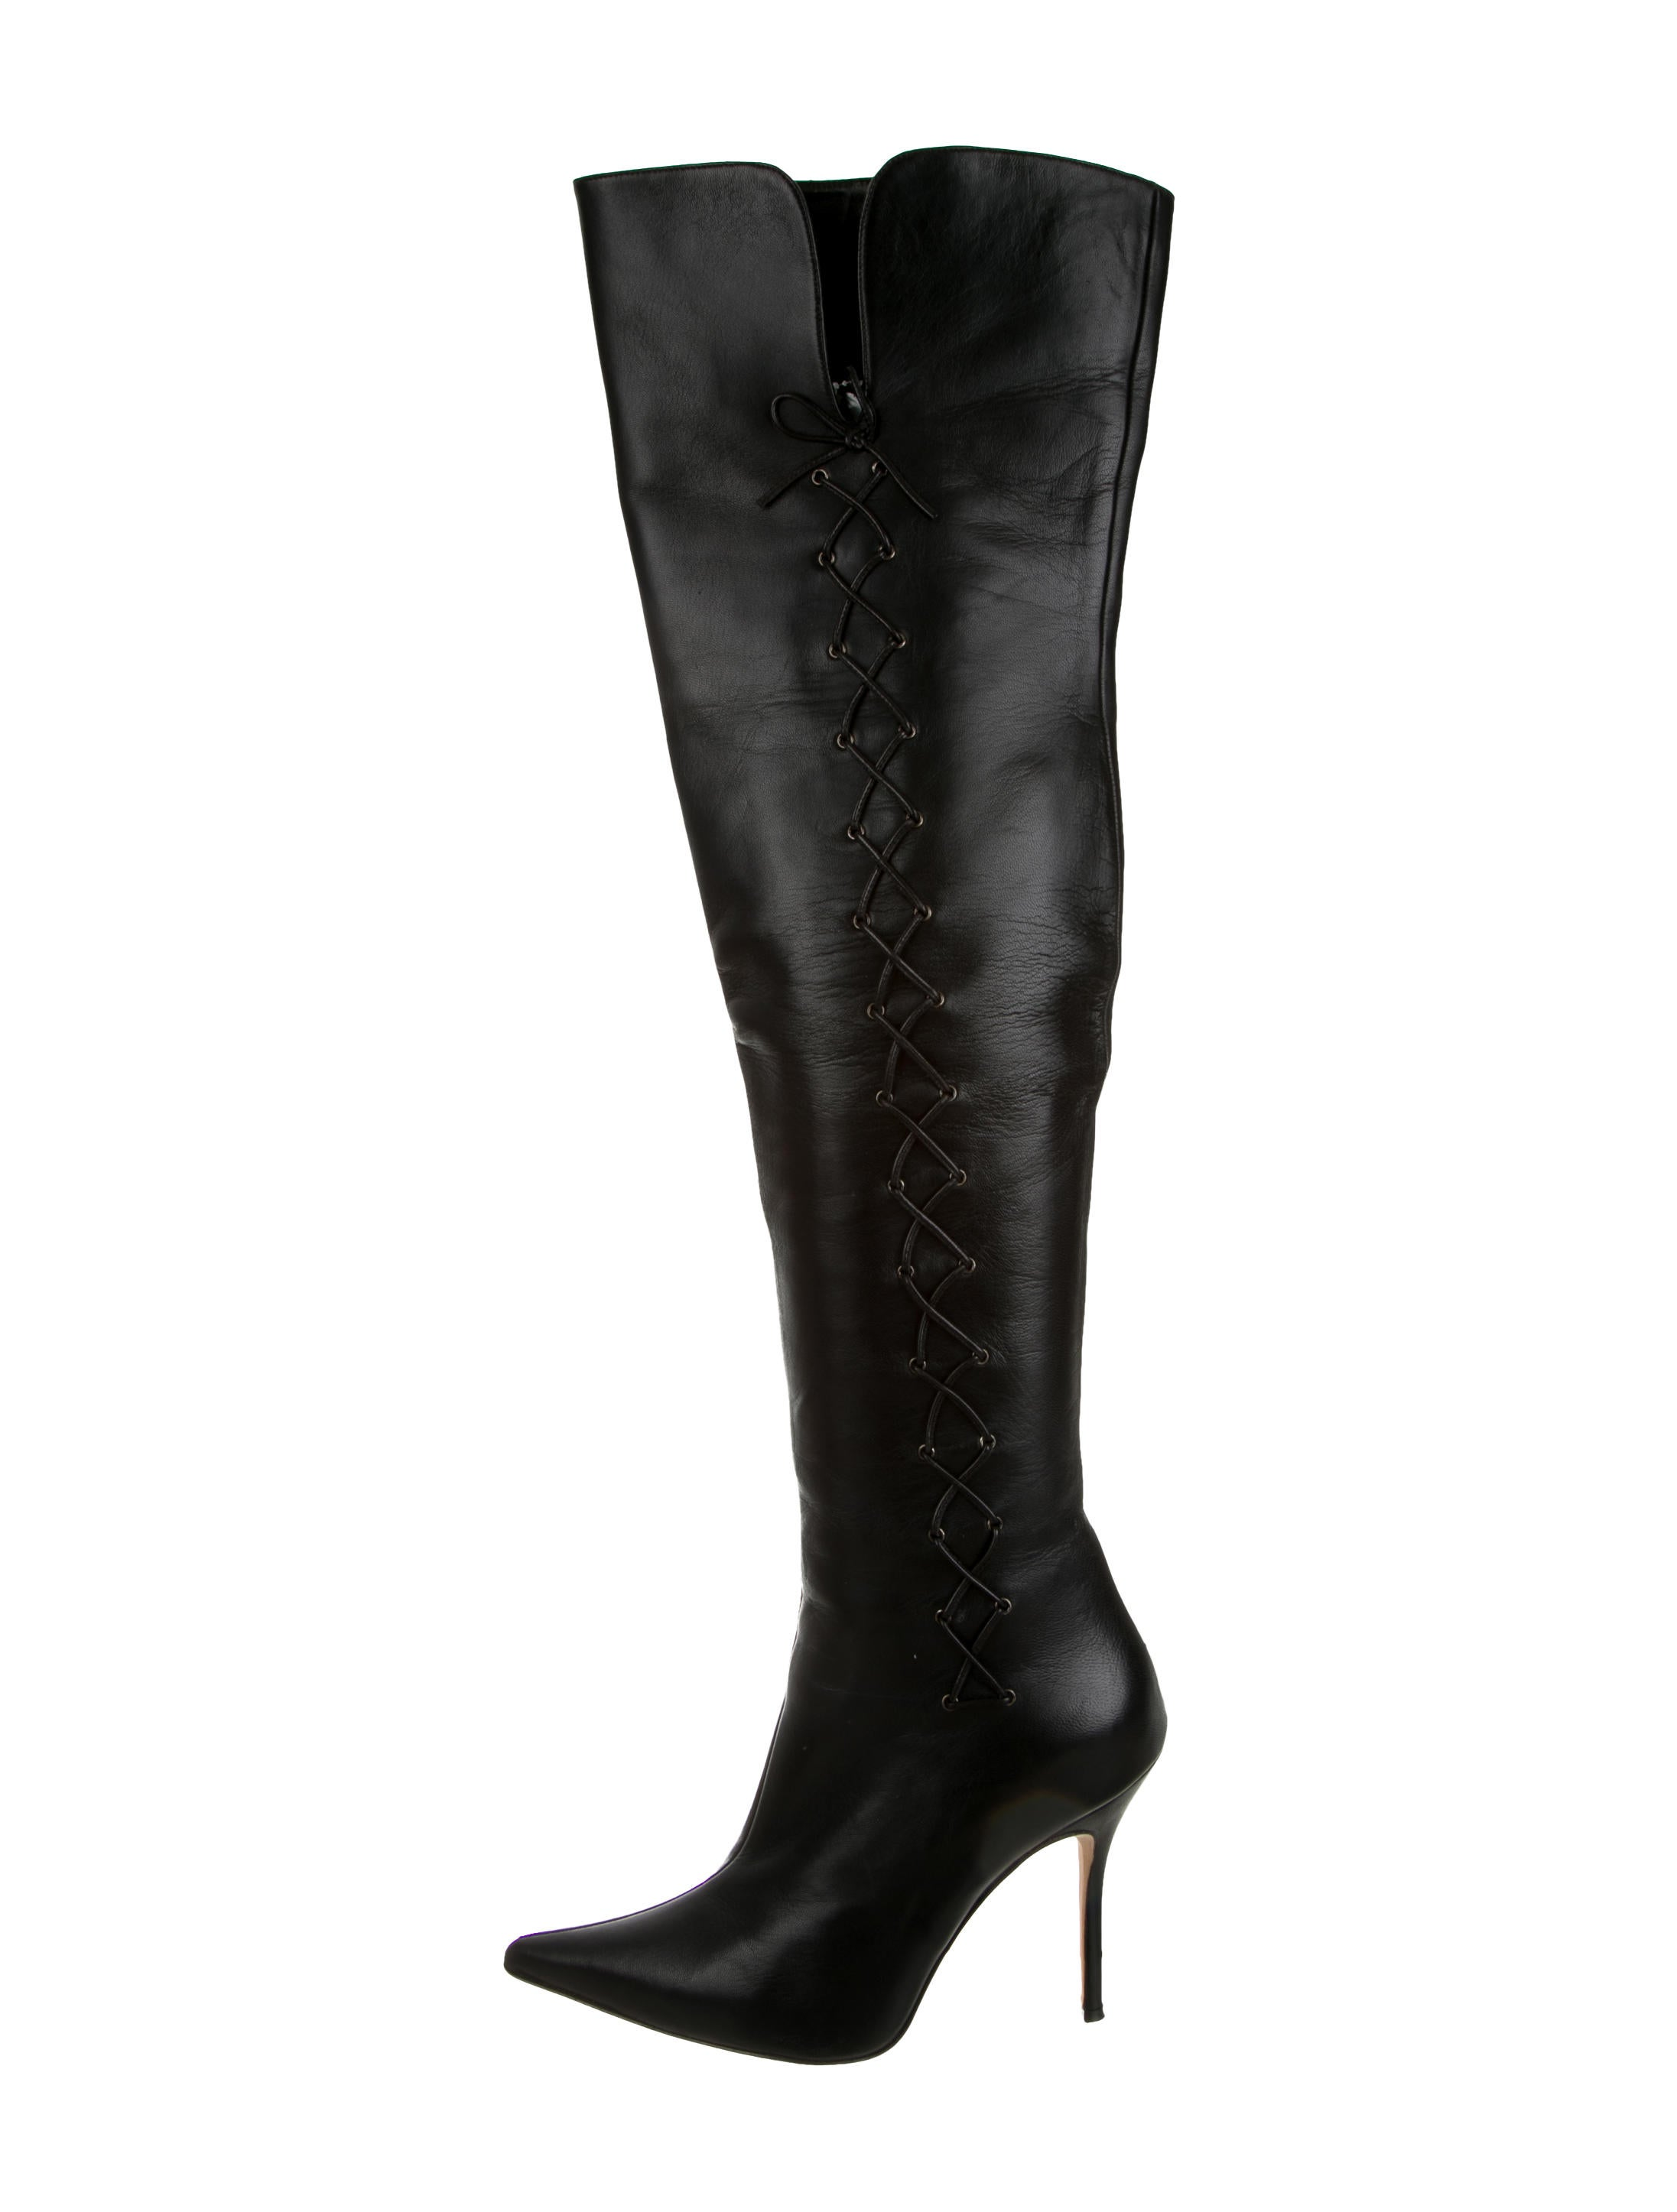 Manolo Blahnik Lace-Up Over-The-Knee Boots